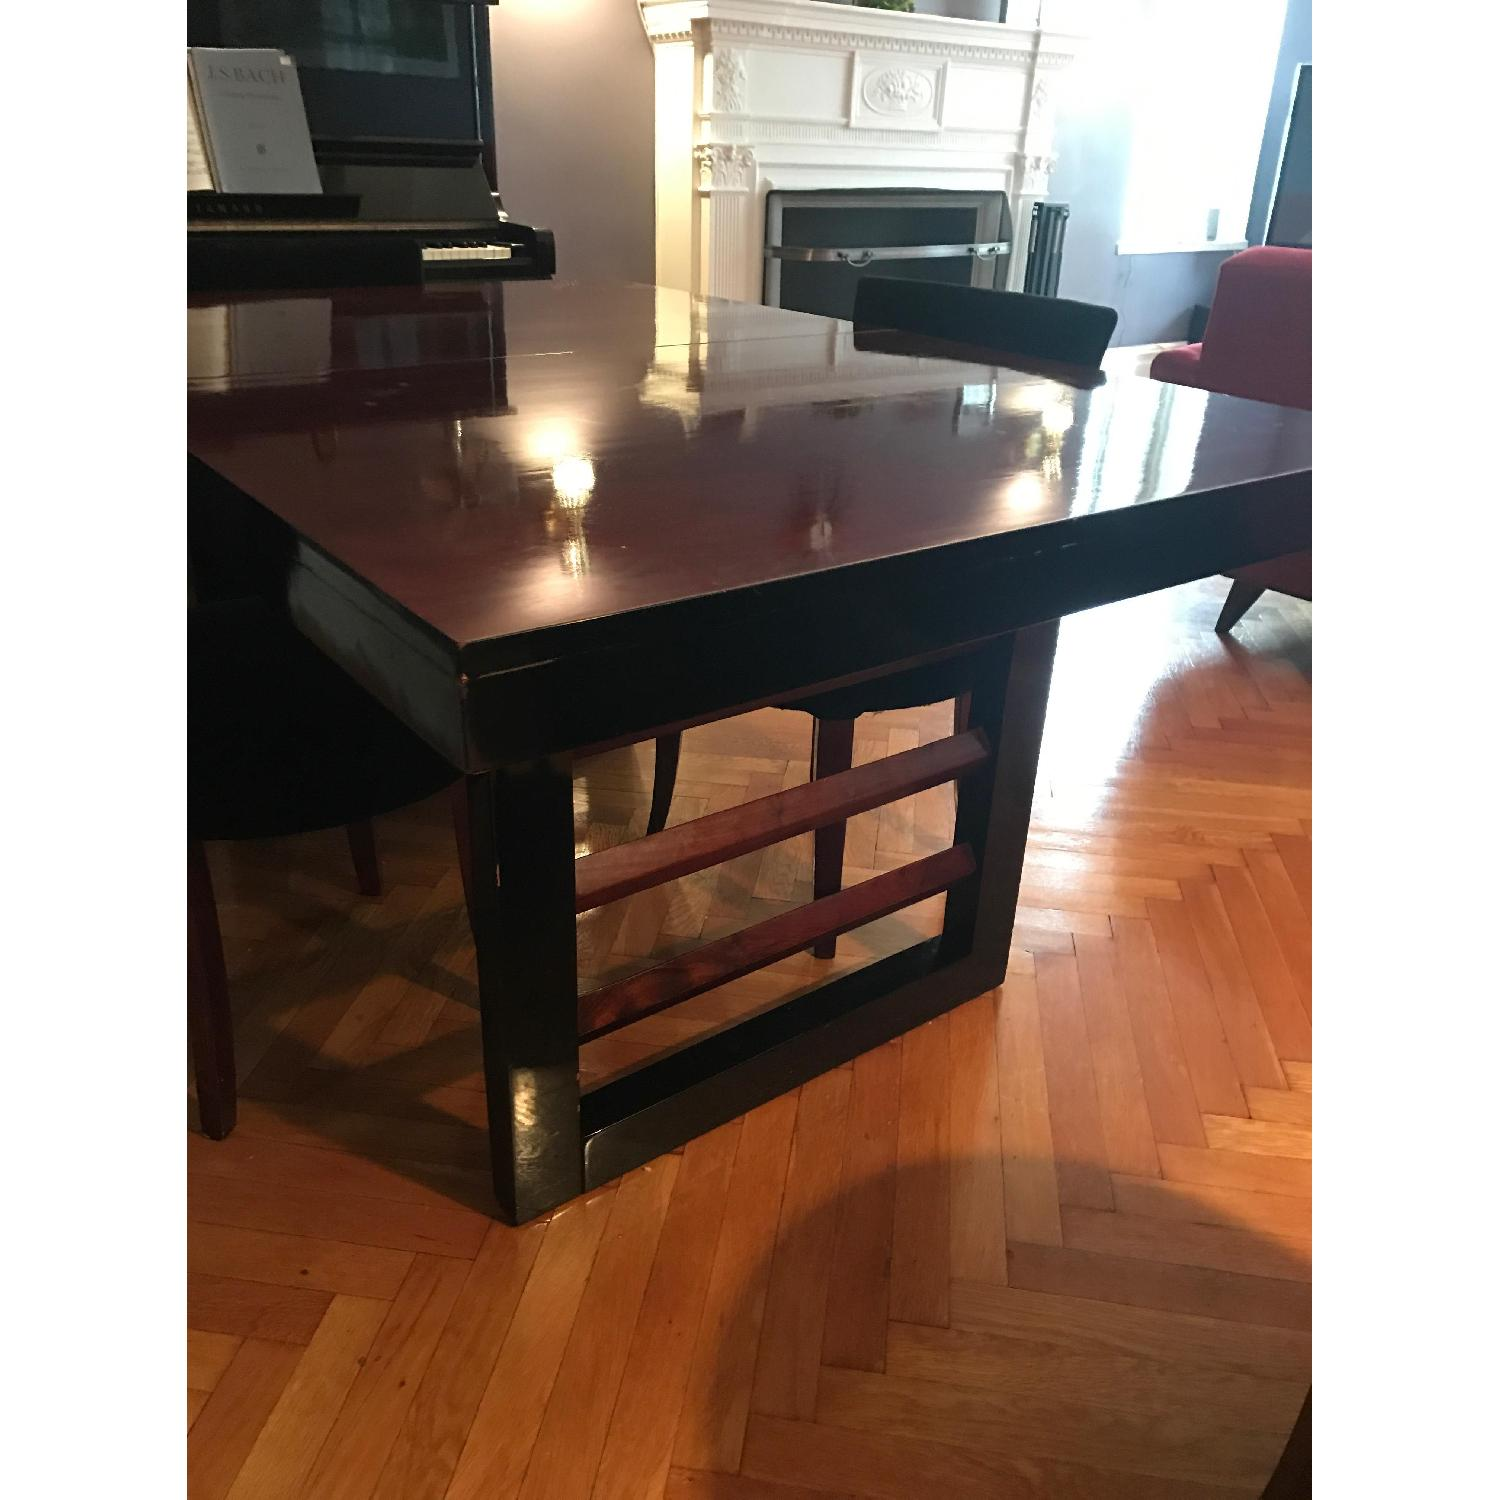 Depression Modern Extendable Dining Table w/ 4 Chairs - image-2